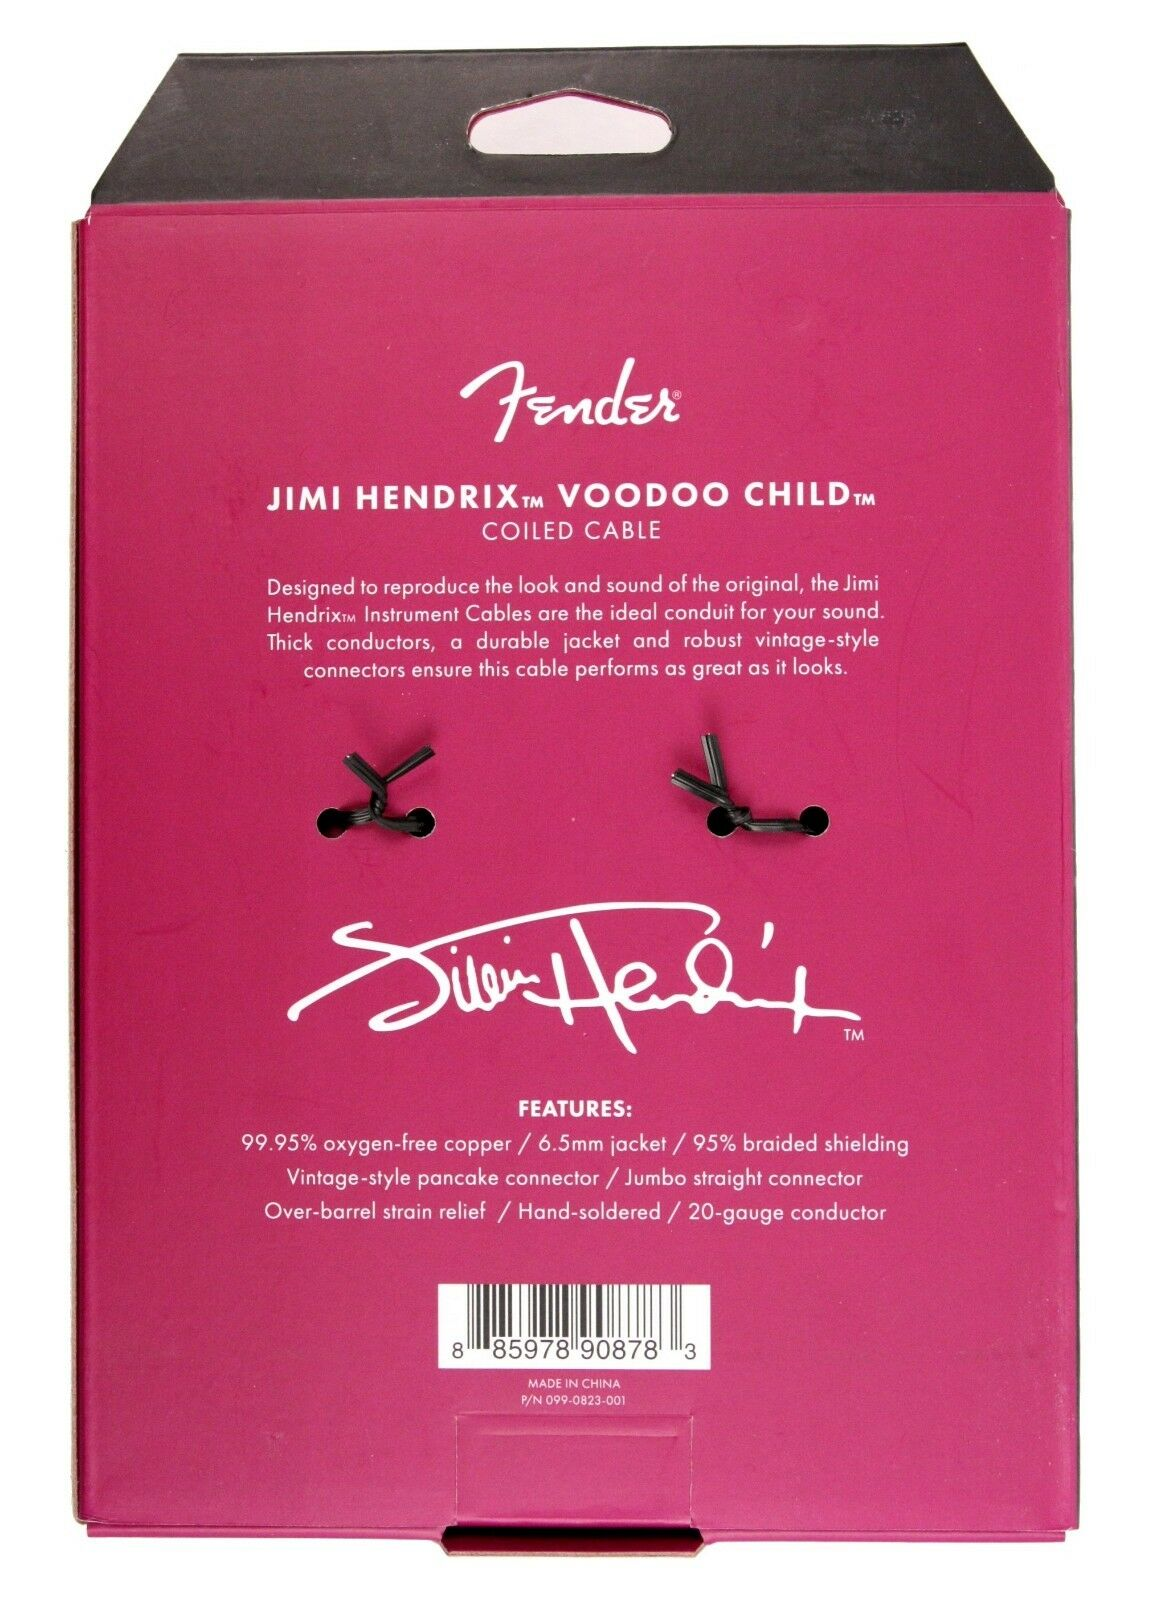 Fender Hendrix Voodoo Child Coiled Cable 30' - Purple, Straight to Angled